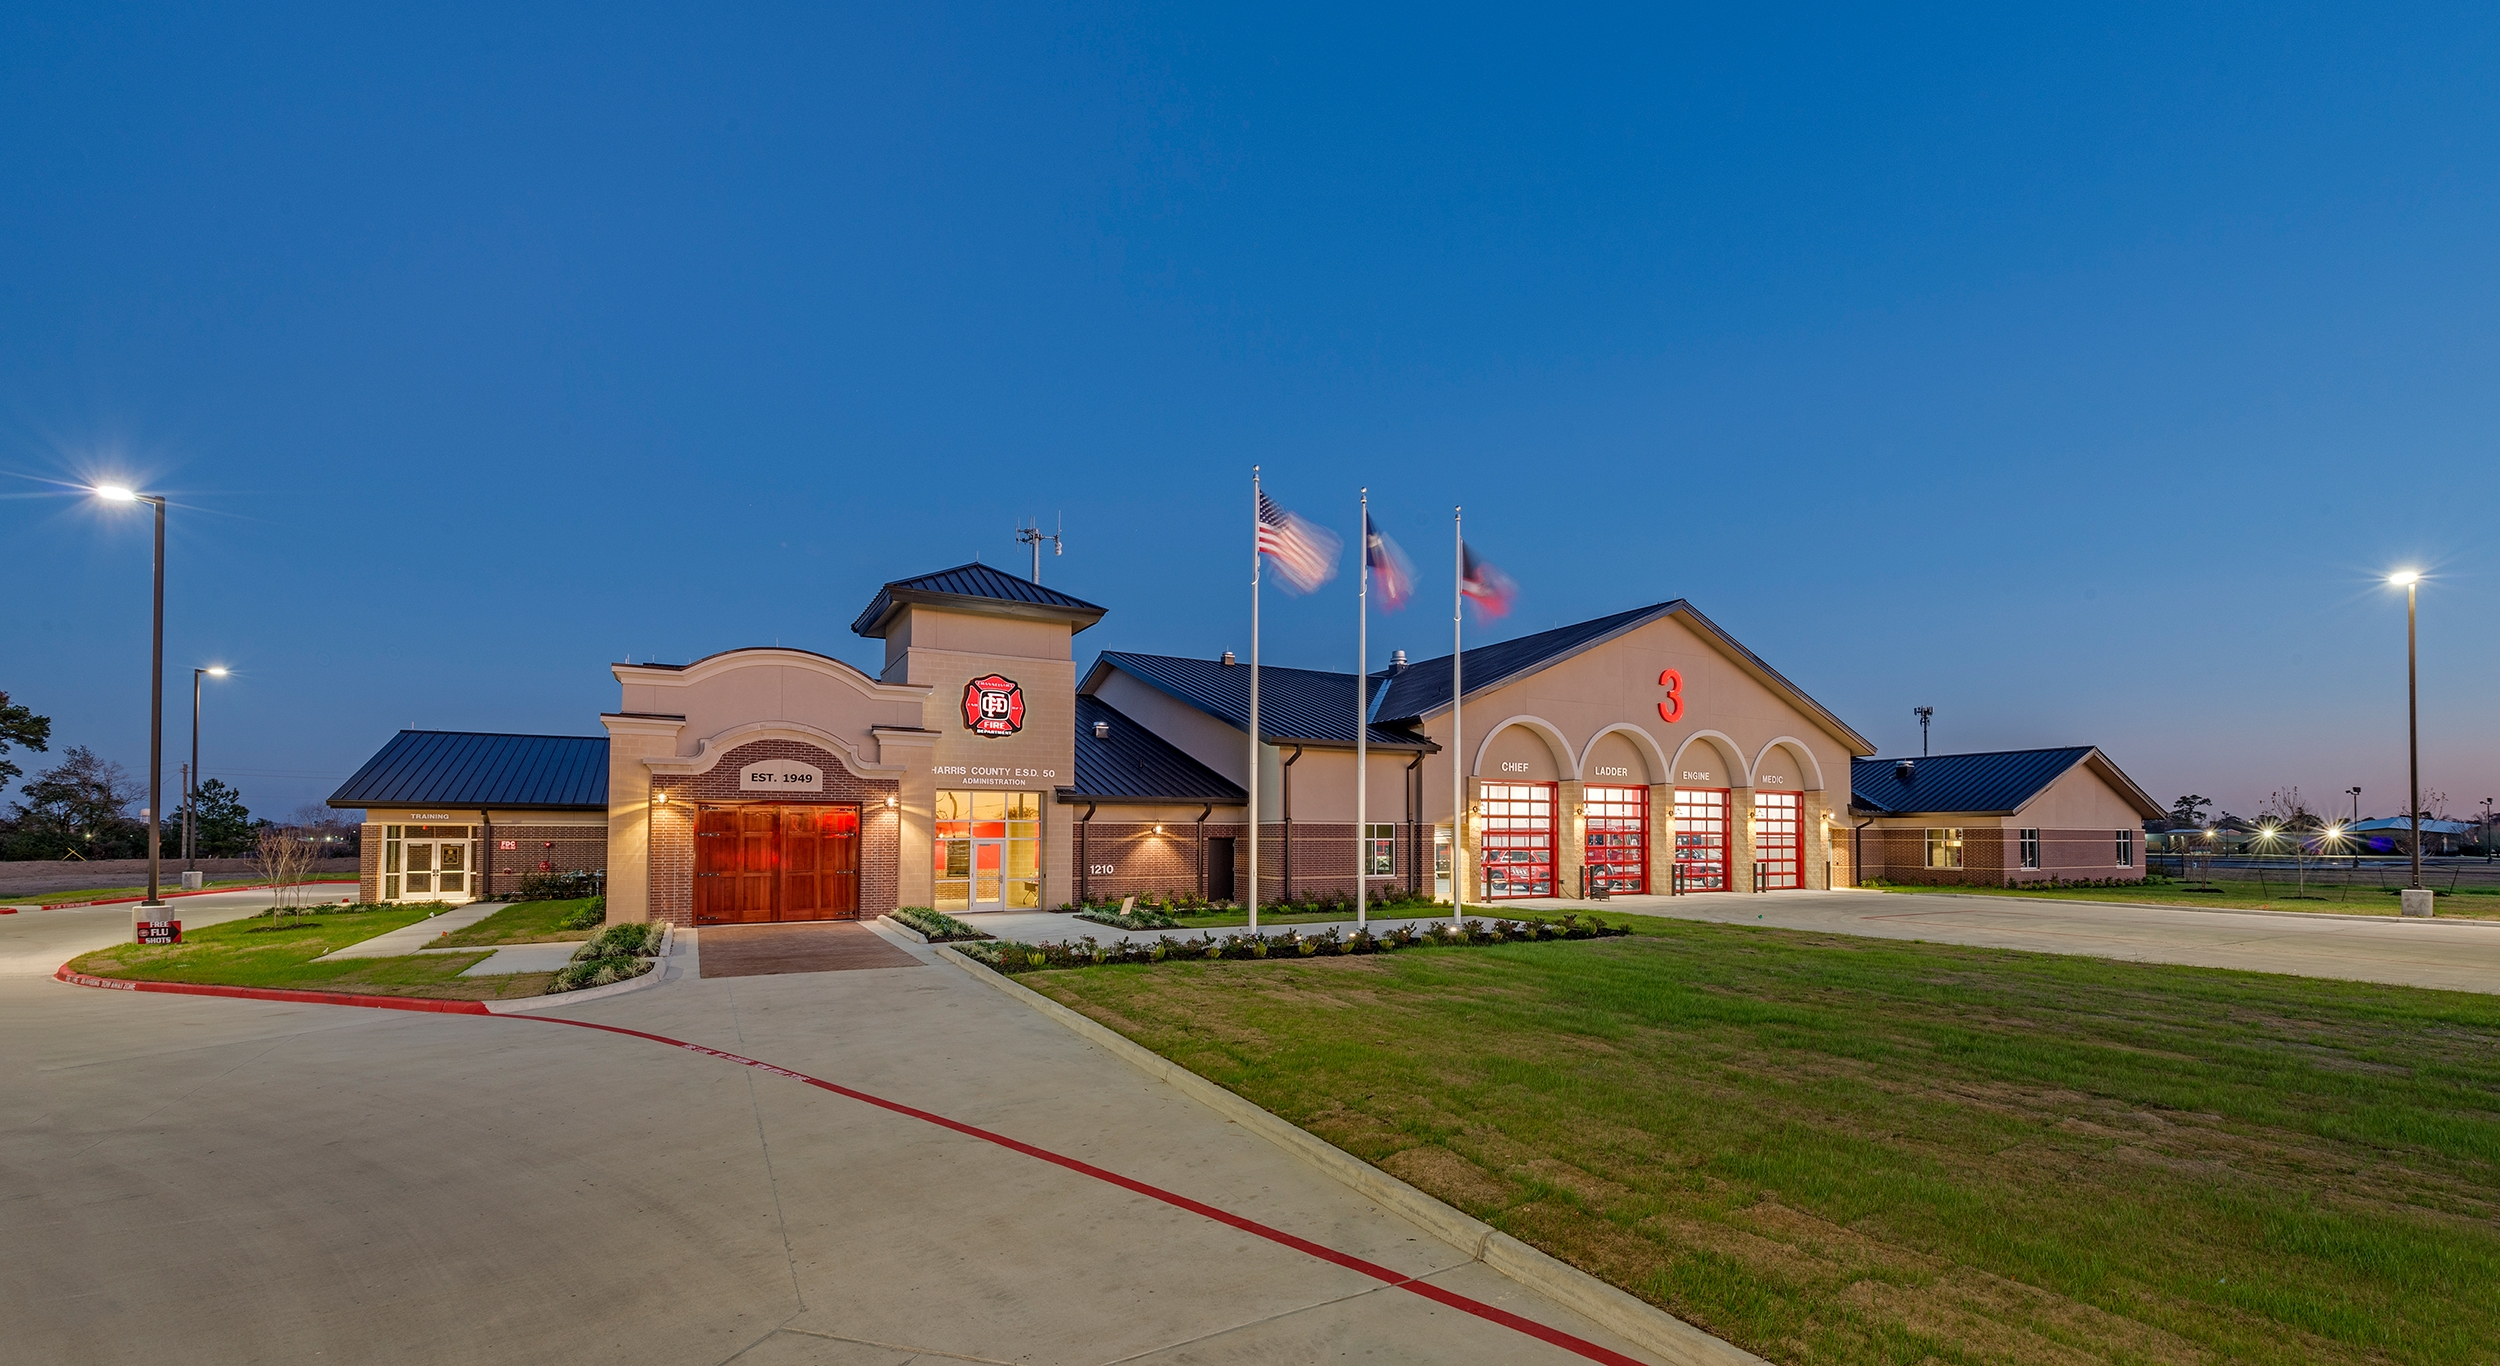 118. Channelview Fire and Administration Building